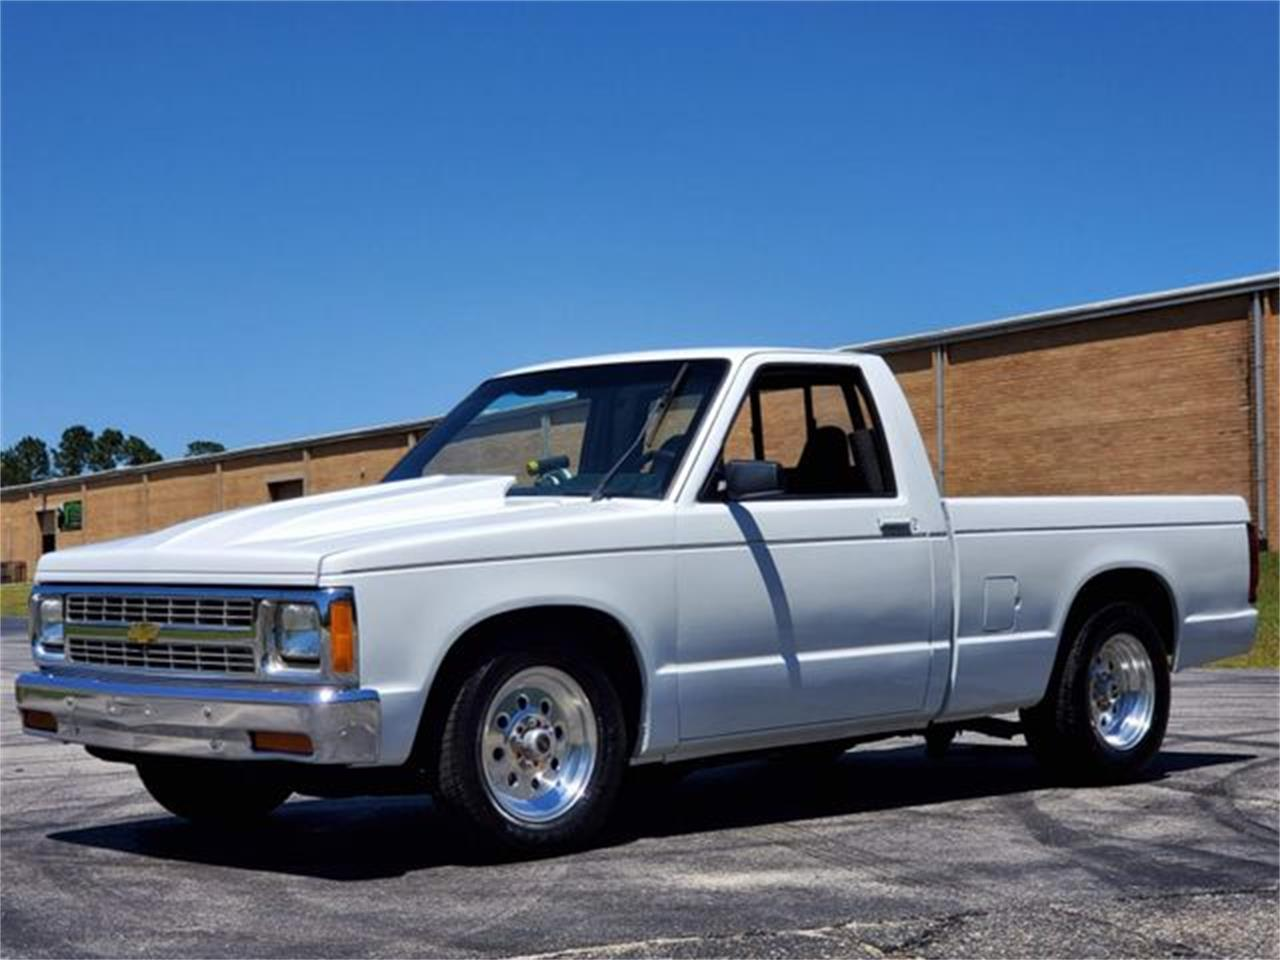 1991 Gmc Sonoma For Sale In Hope Mills Nc Classiccarsbay Com